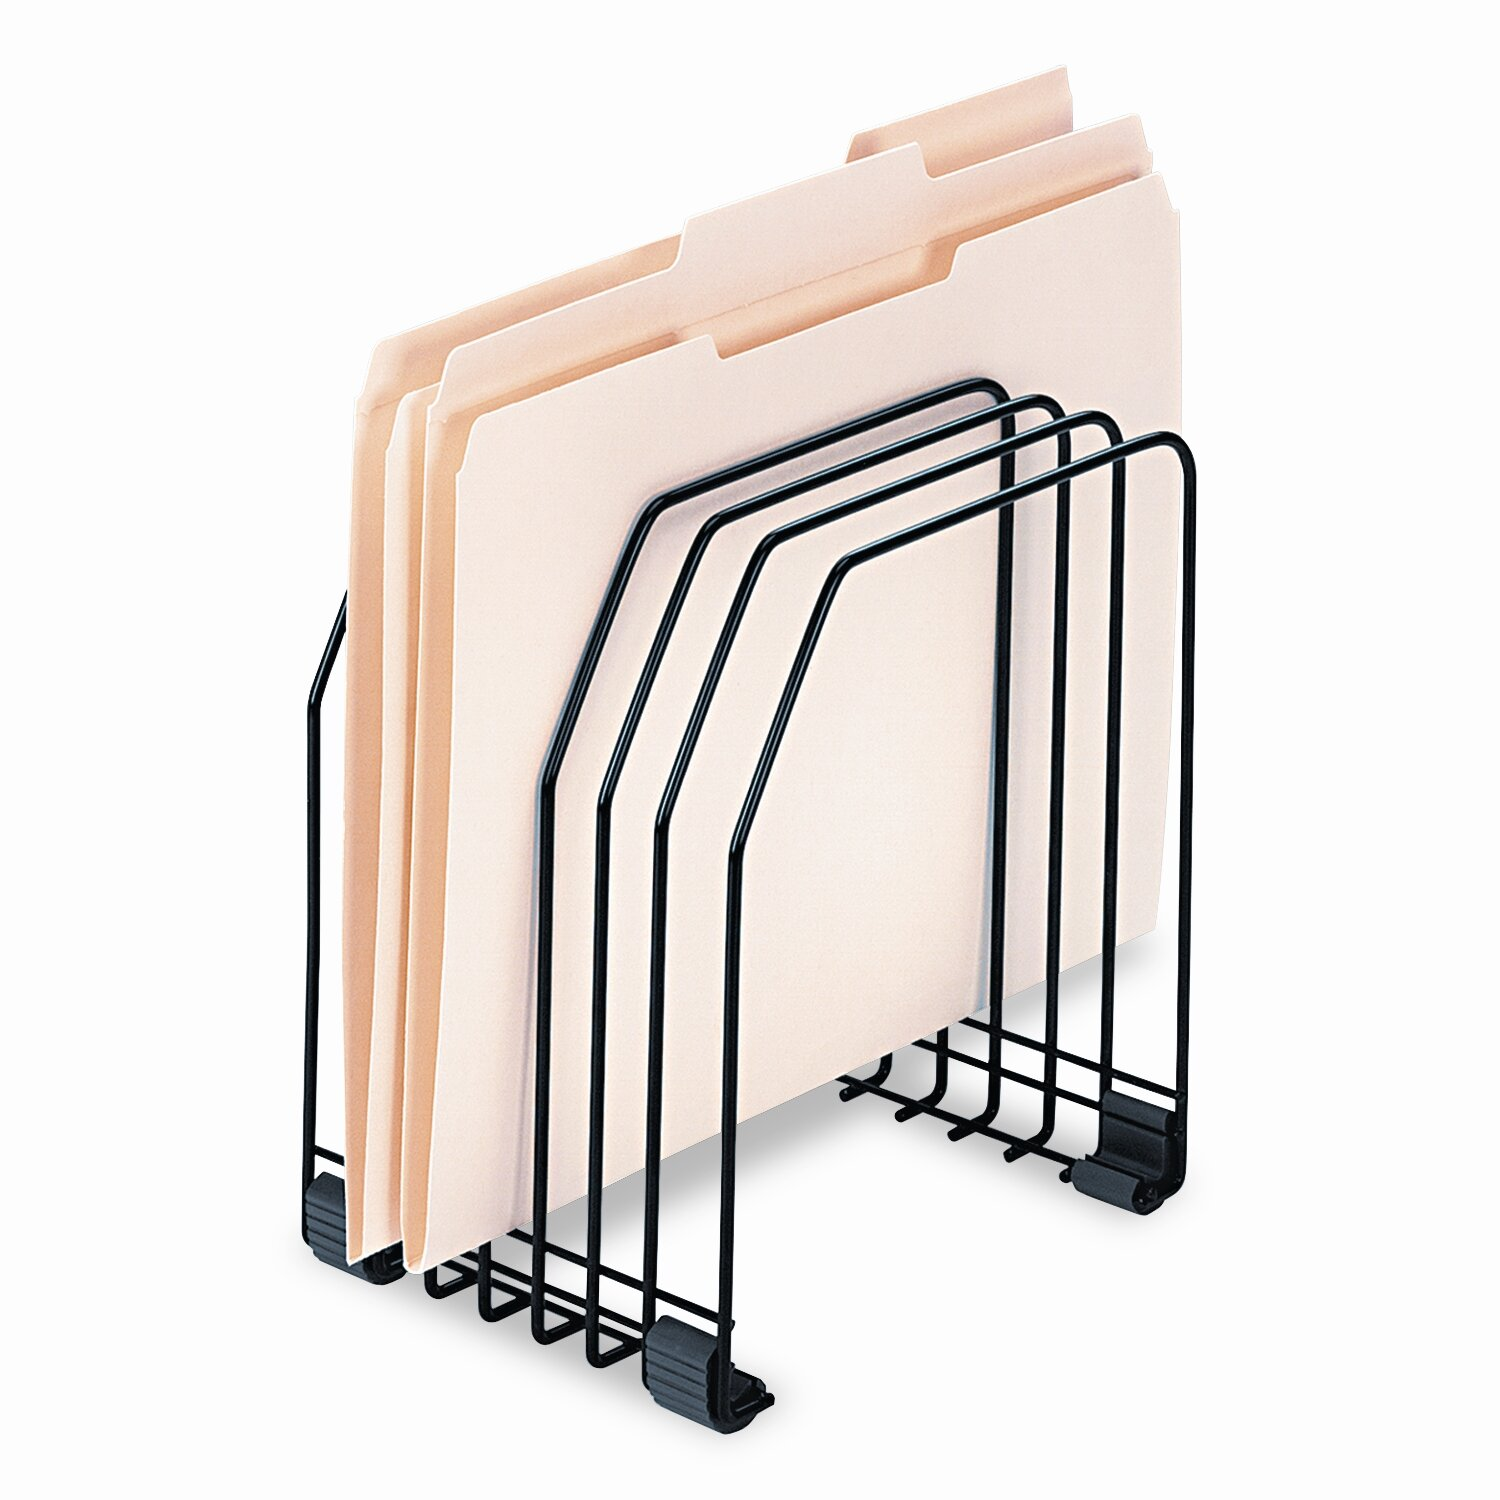 Wire File Folder Organizer   Fellowes Manufacturing Workstation File Organizer Seven Sections